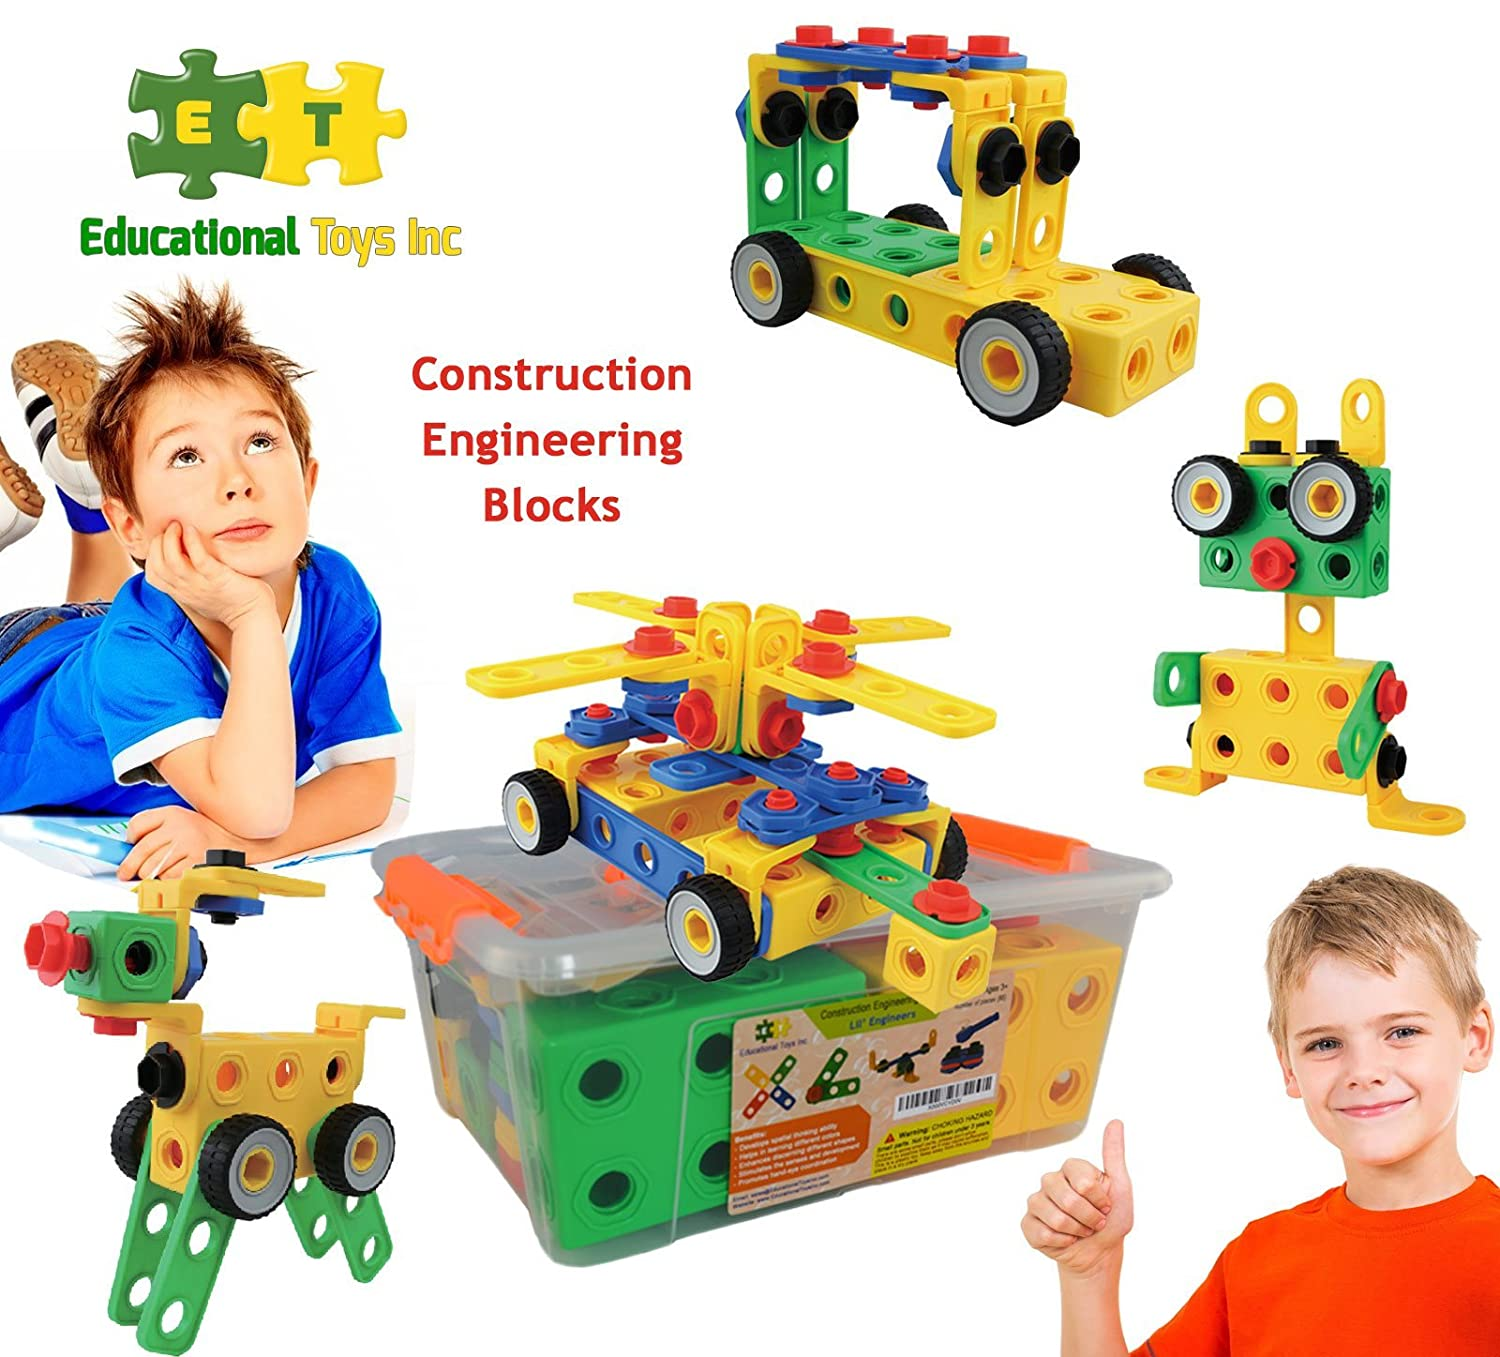 Construction Toys For Boys : Best gifts for year old boys in itsy bitsy fun